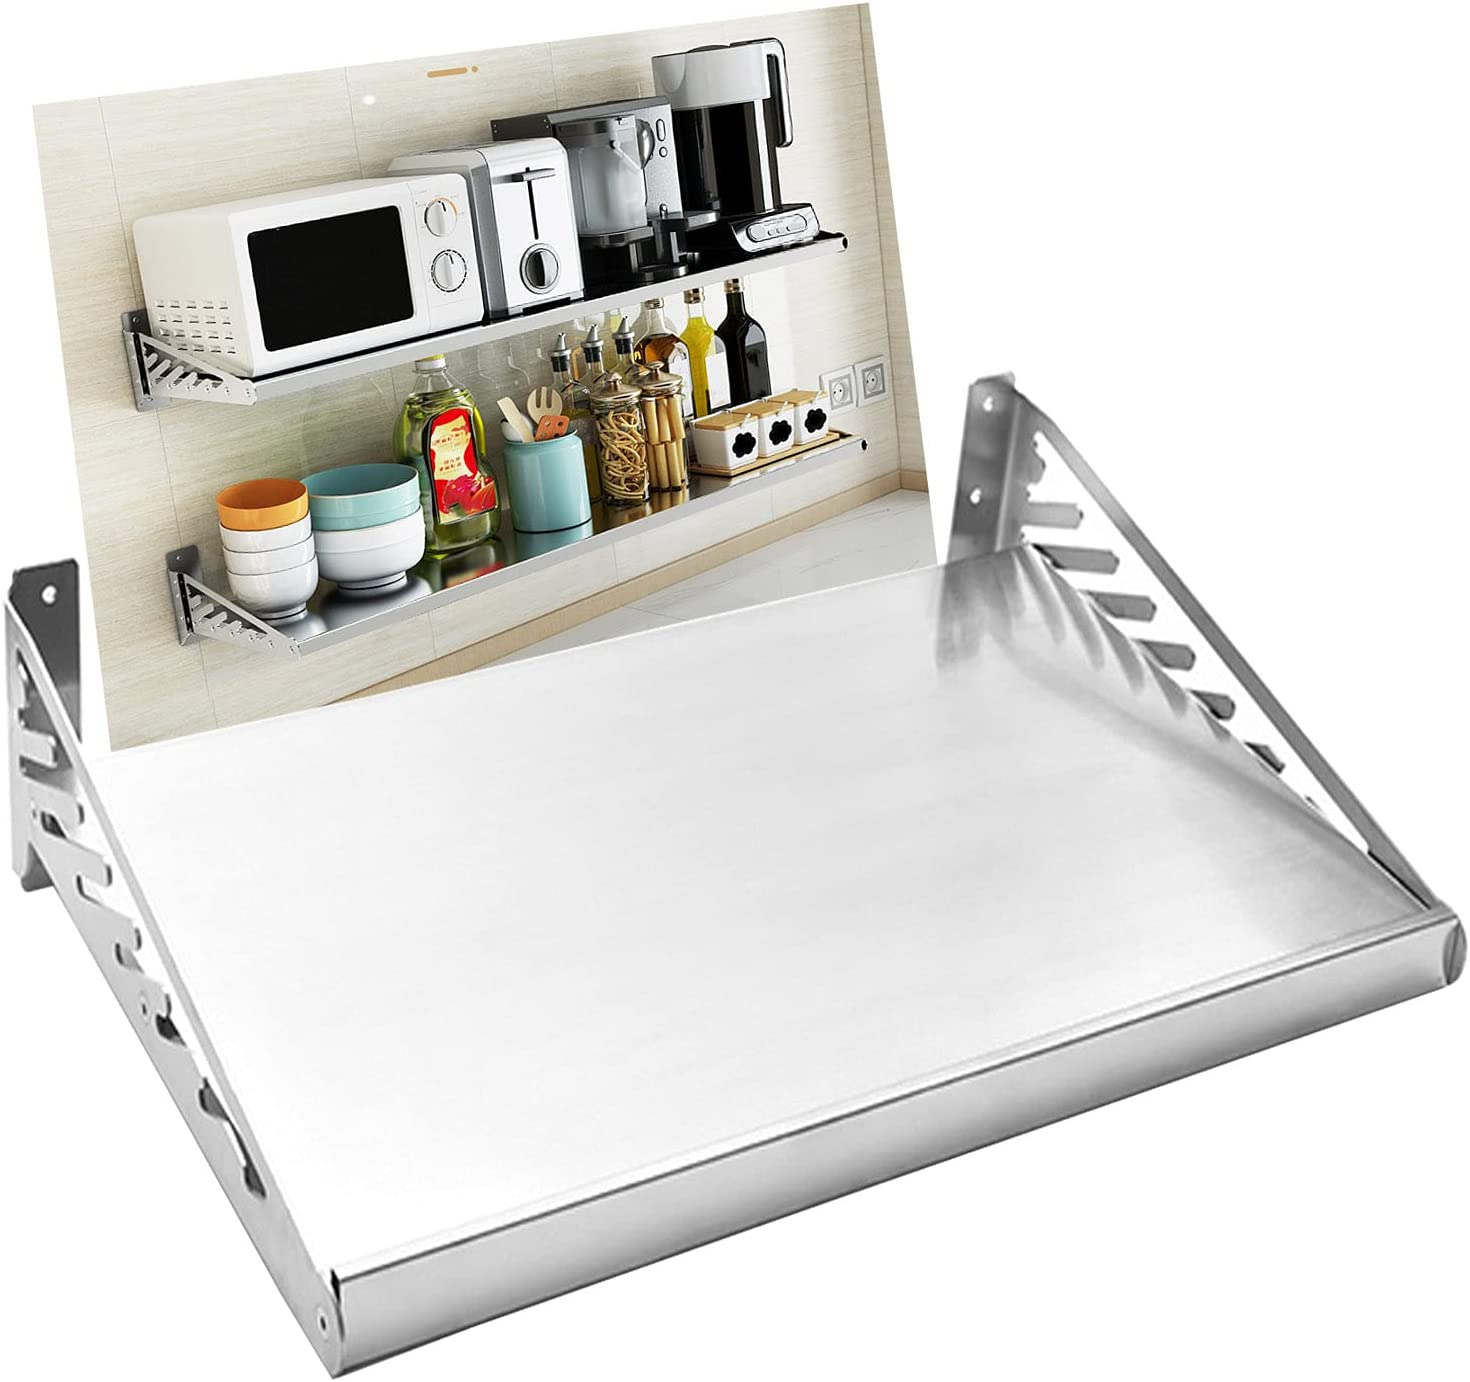 304Stainless Steel Microwave Max 60% OFF Oven Kitchen Limited price sale Baker's Met Rack